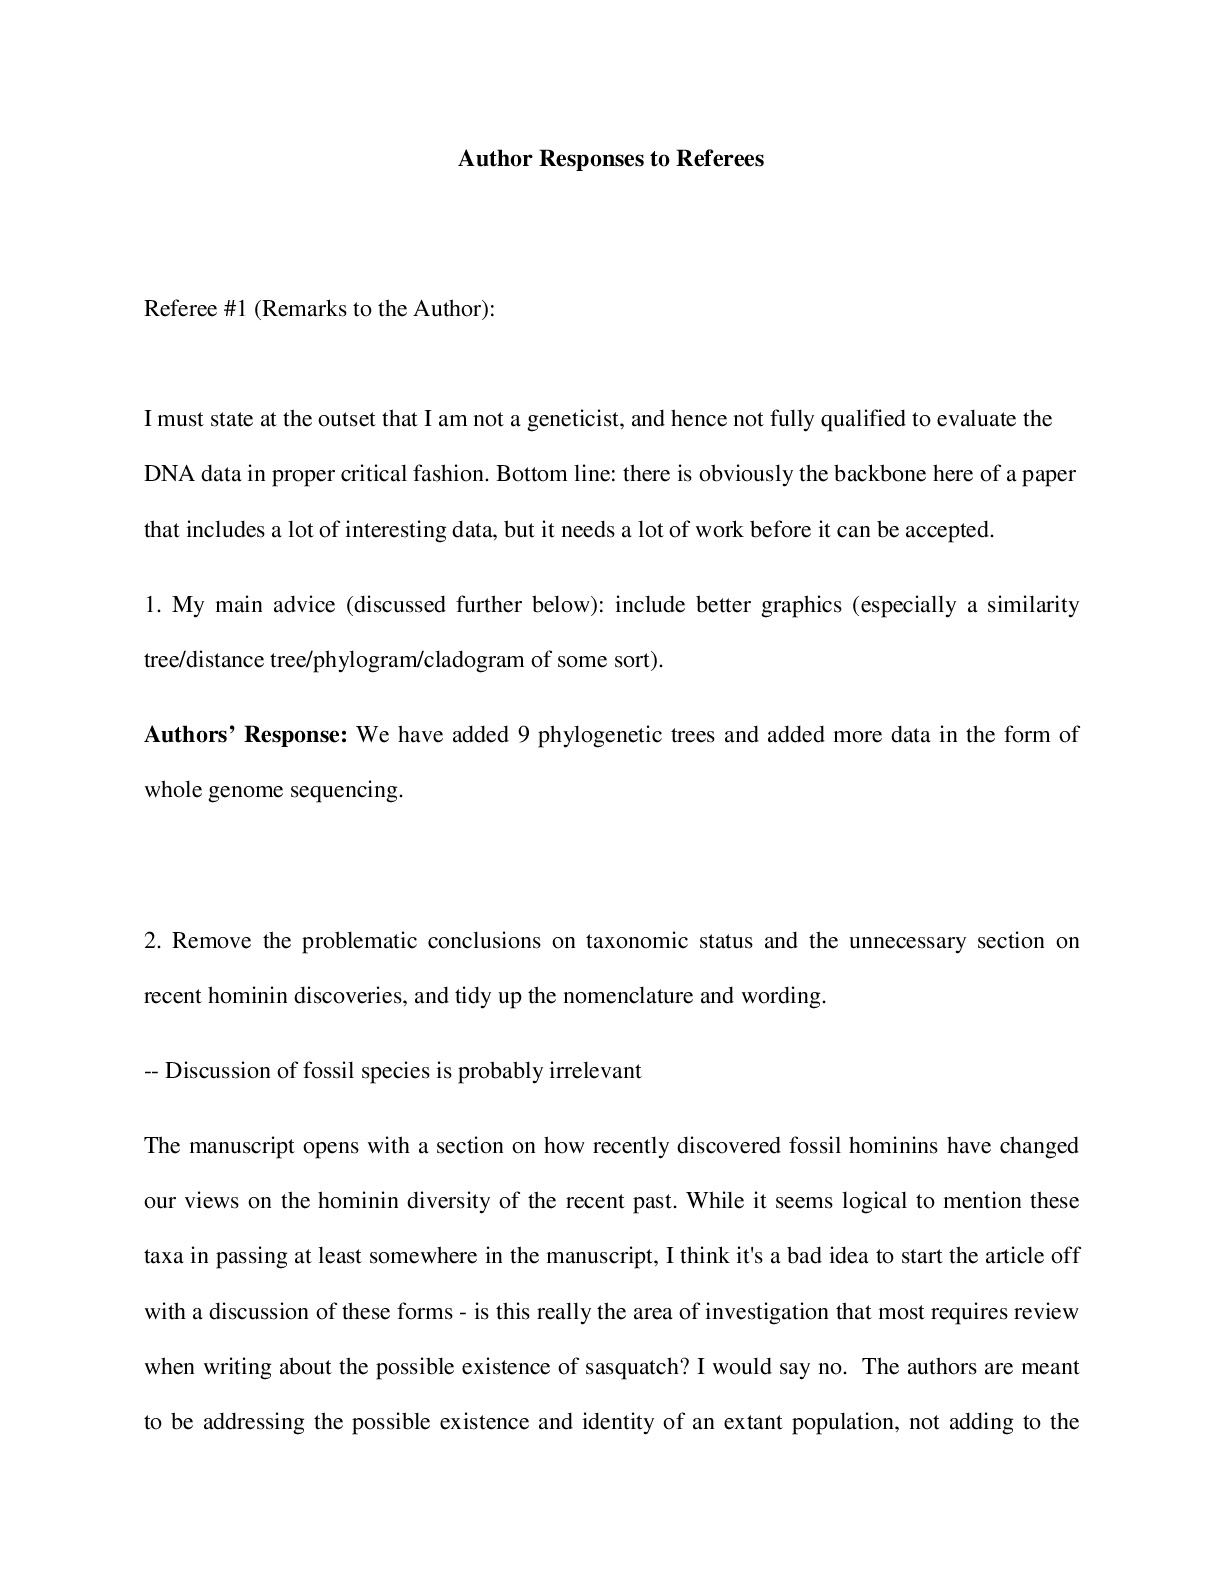 critical response essay format sample resume skills profile critical response essay format neurology nurse sample resume author responses to referees first review critical response